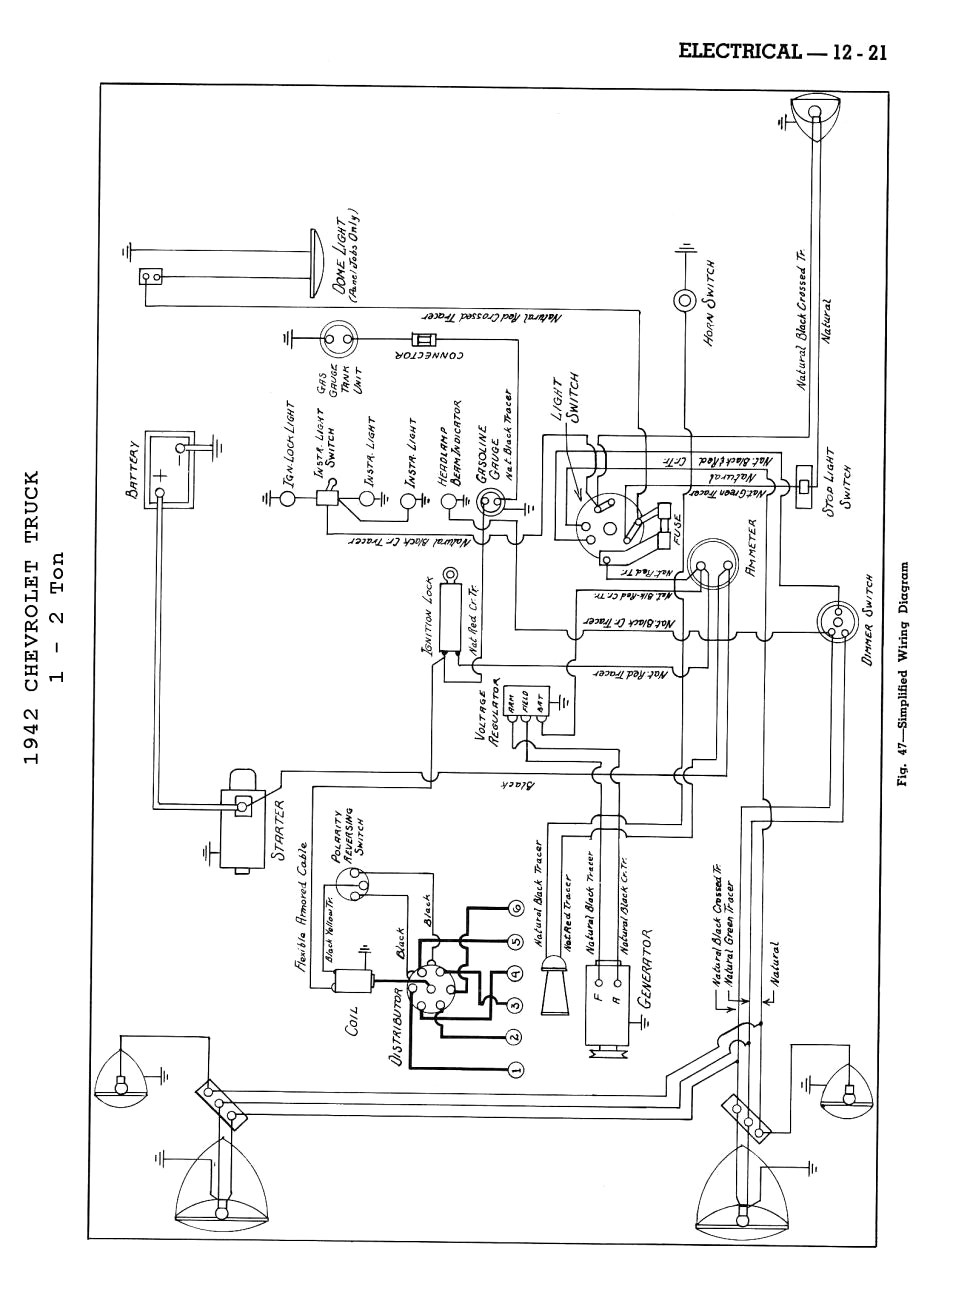 hight resolution of duo therm wiring diagram wiring diagrams suburban rv furnace coleman mach air outstanding duo therm